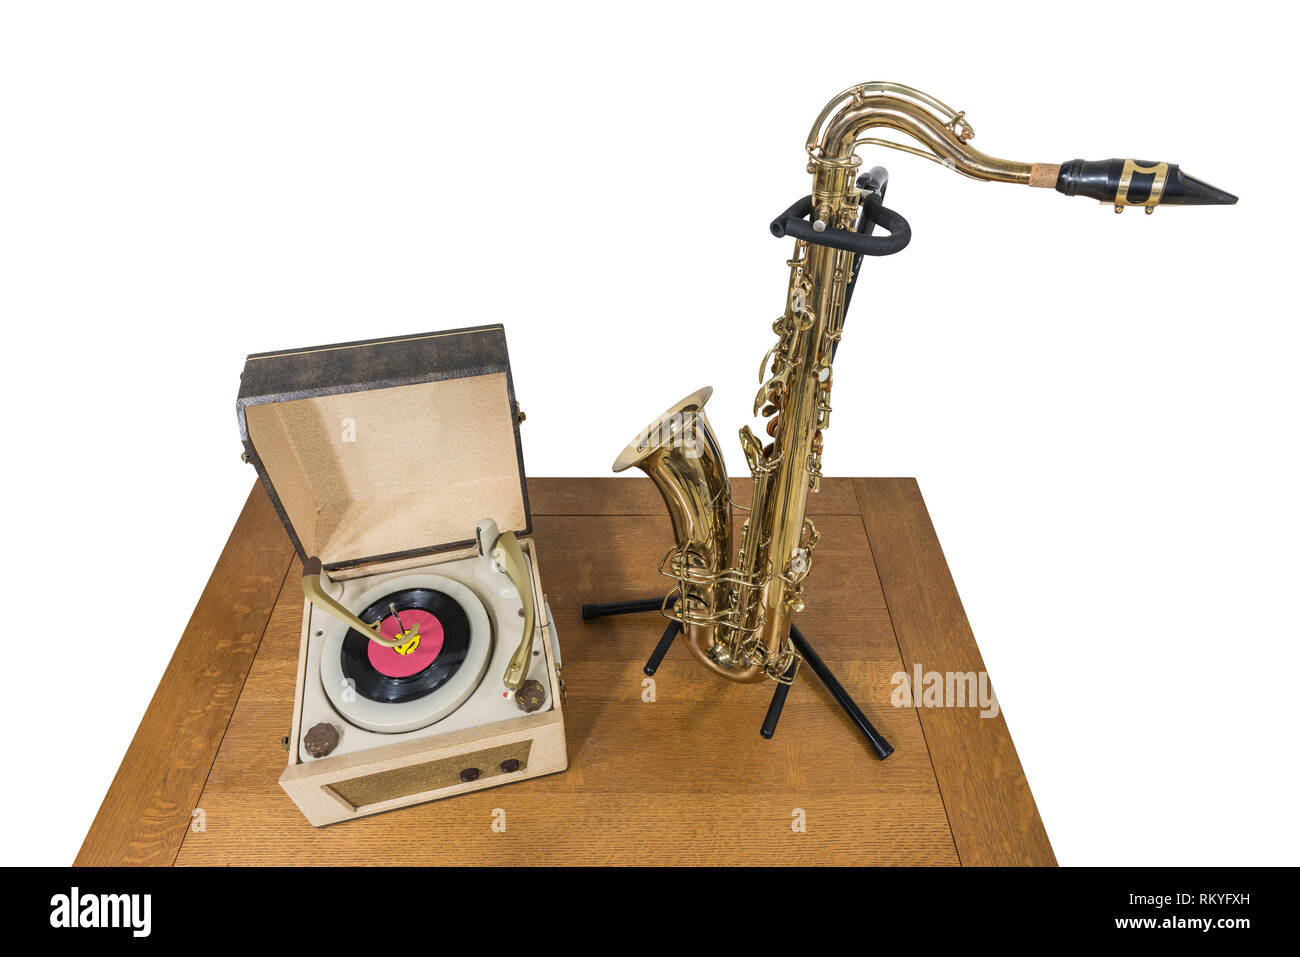 Vintage record player and saxophone on wood table isolated on white. Stock Photo